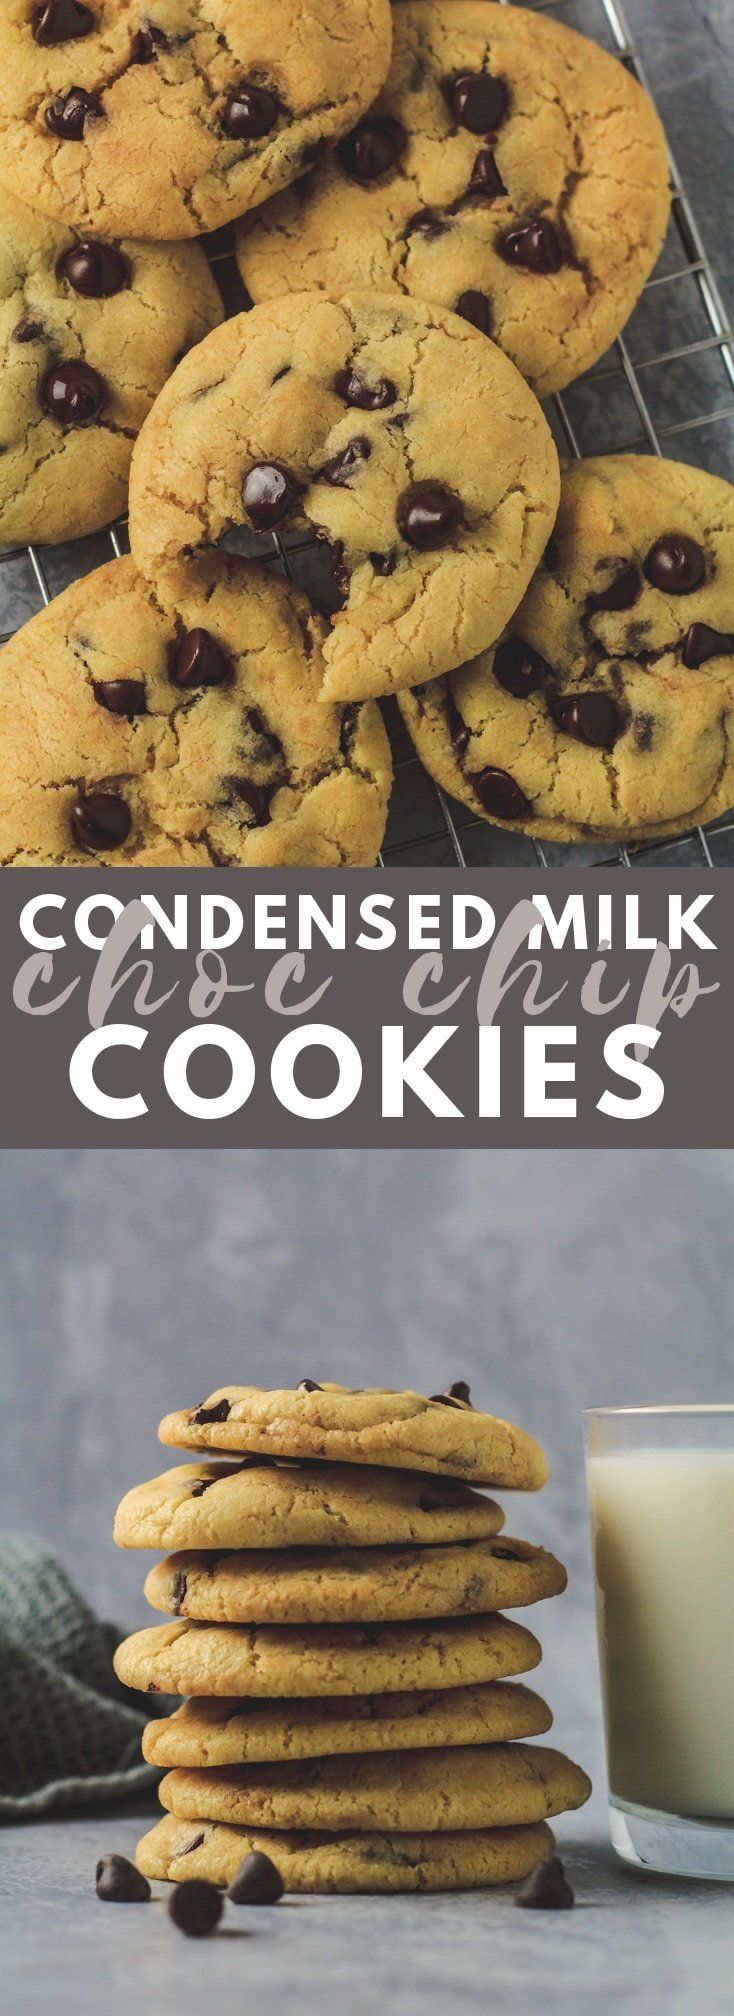 Condensed Milk Chocolate Chip Cookies- Incredibly thick, soft and chewy cookies that are made with sweetened condensed milk, and stuffed full of chocolate chips!